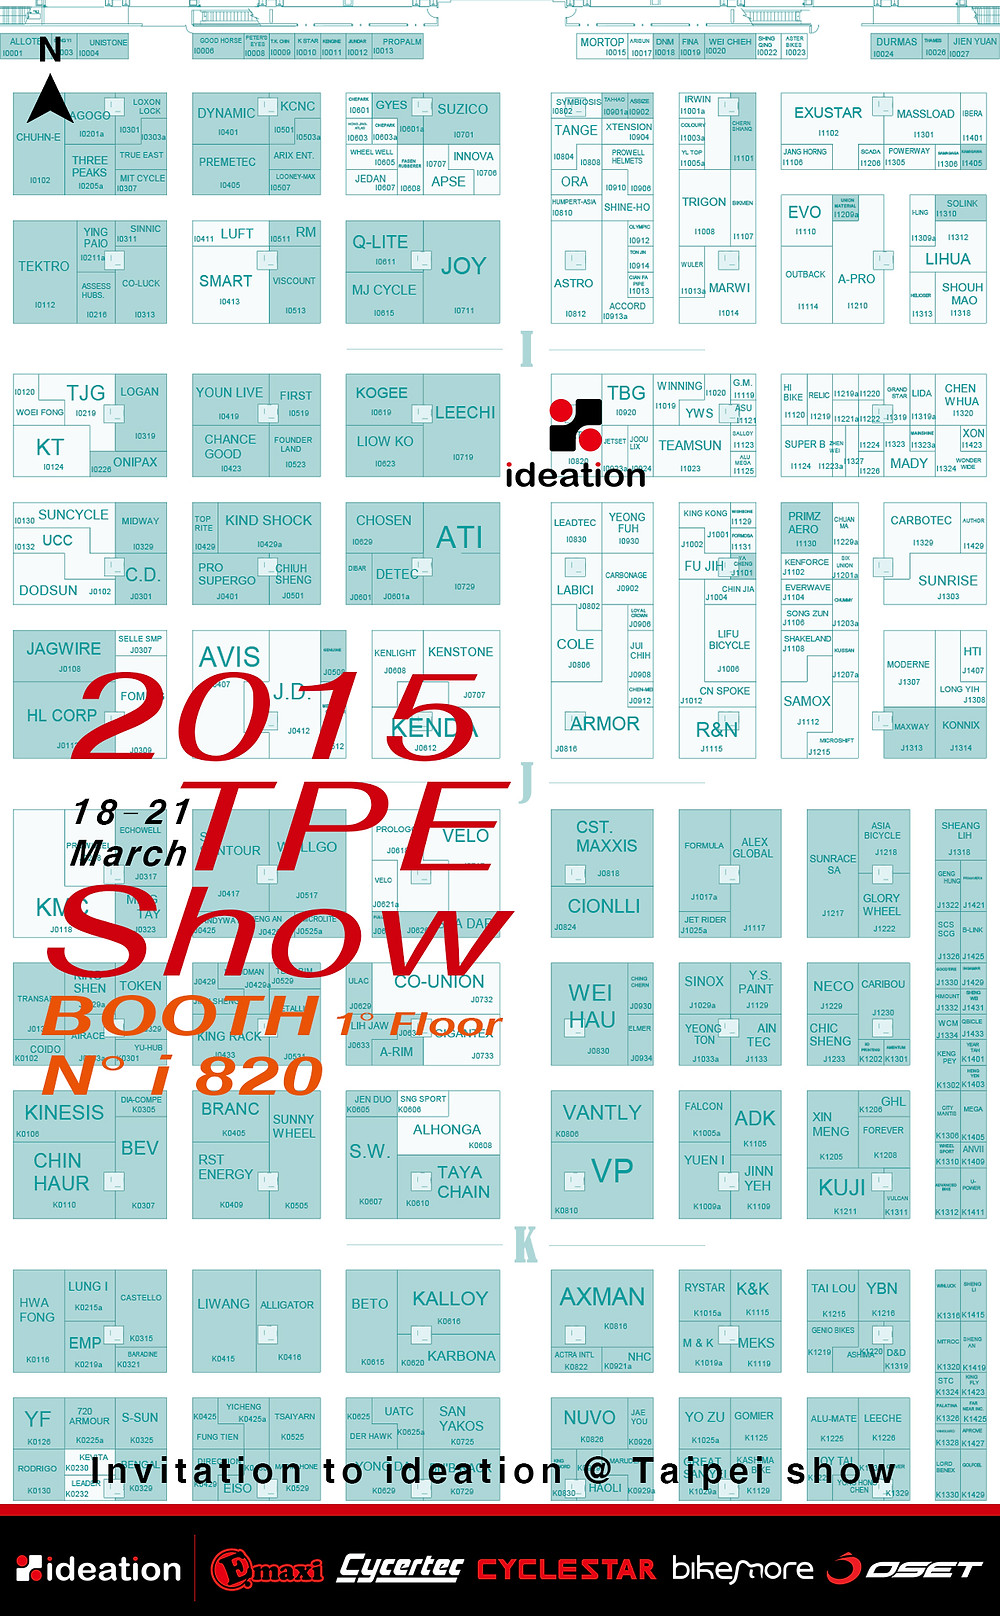 TPE-ideation-BOOTH-i-820-2015.jpg